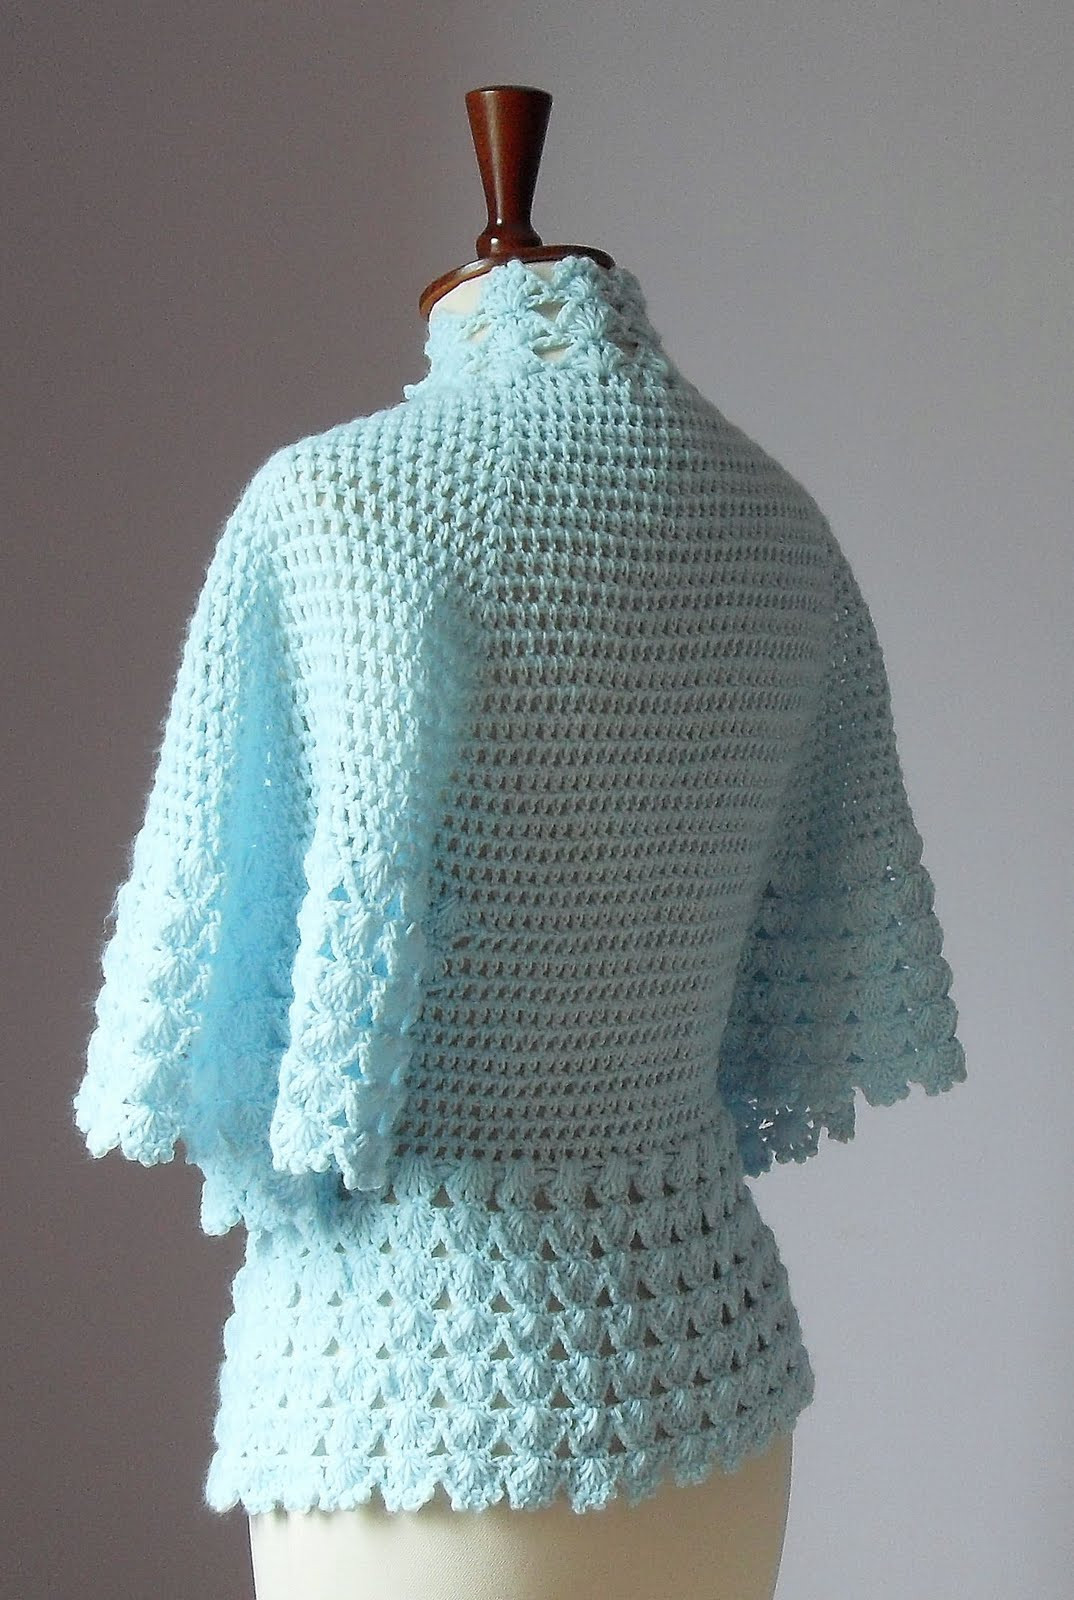 Crochet Jacket Luxury Silvia66 Crocheted Bed Jacket or Light Cardigan Of Charming 45 Pictures Crochet Jacket